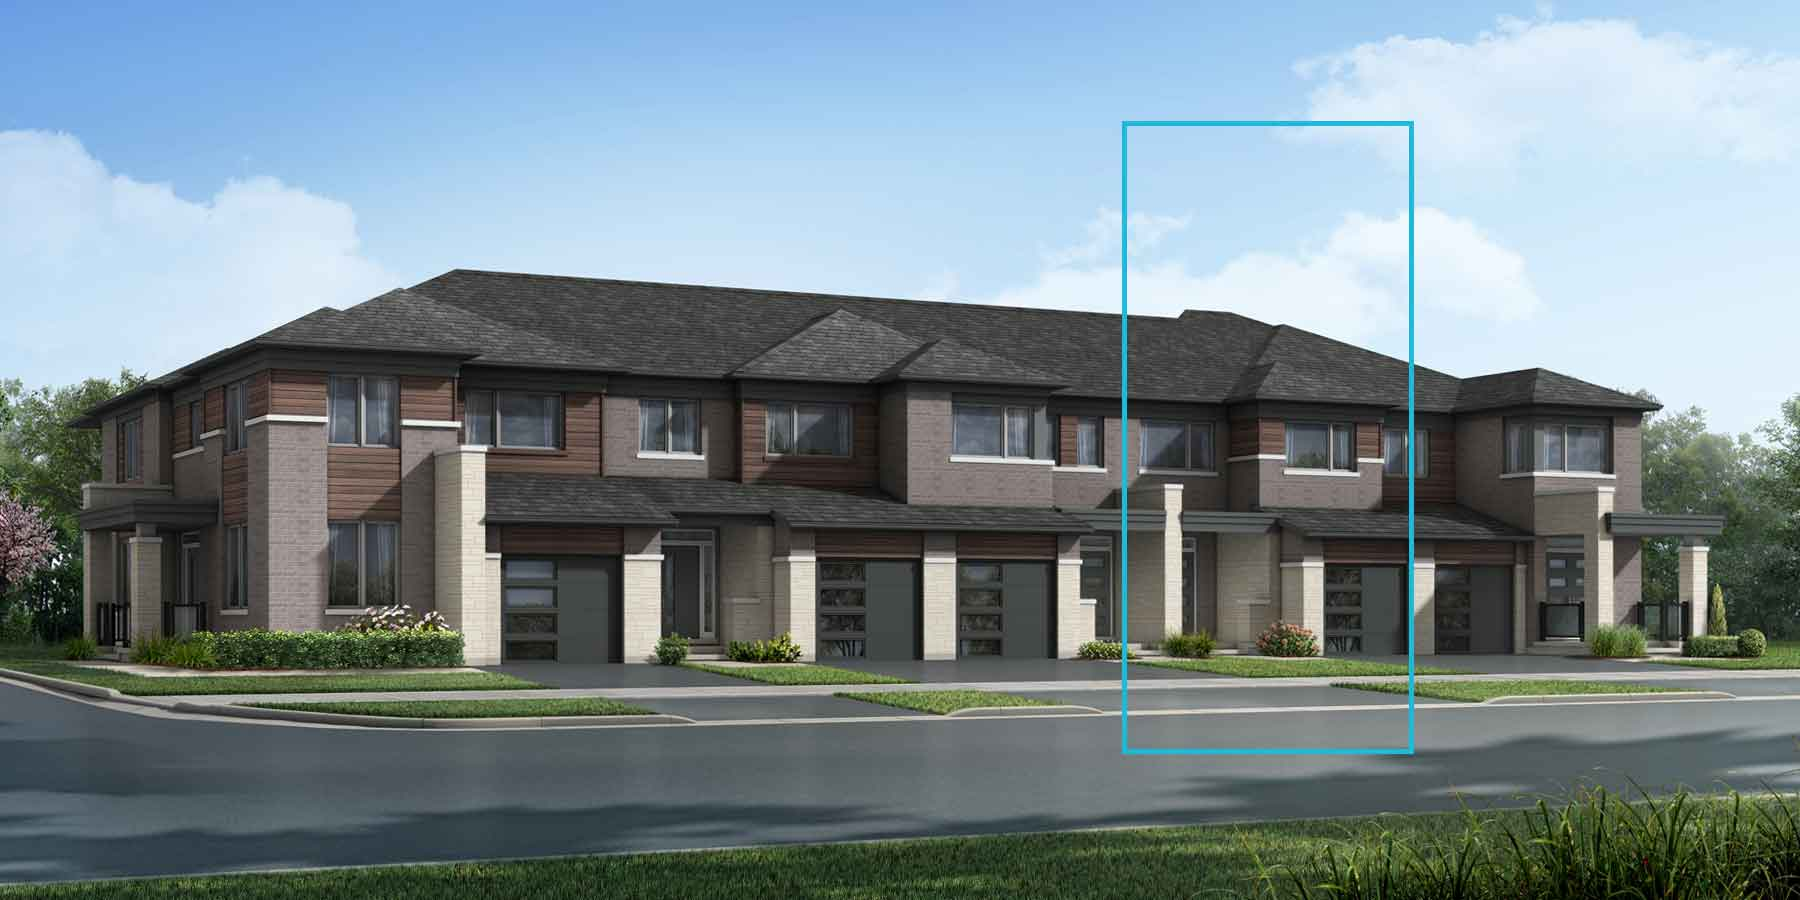 Wildflower Crossing elevationtransitional_southestates_princeton_main in Kitchener Ontario by Mattamy Homes